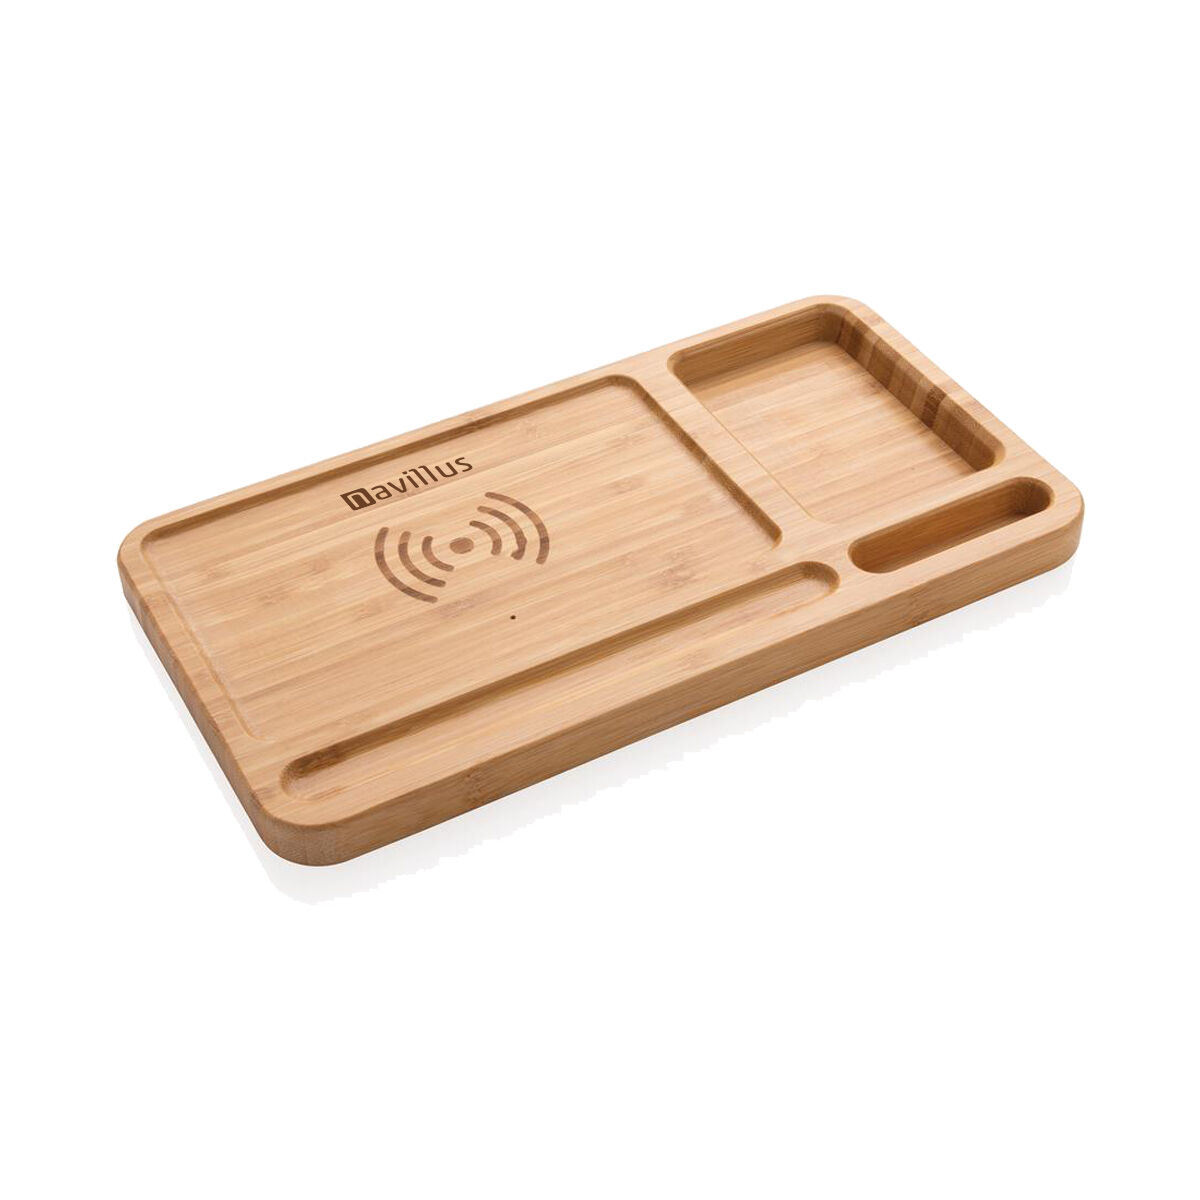 Bamboo Desk Organiser Wireless Charger